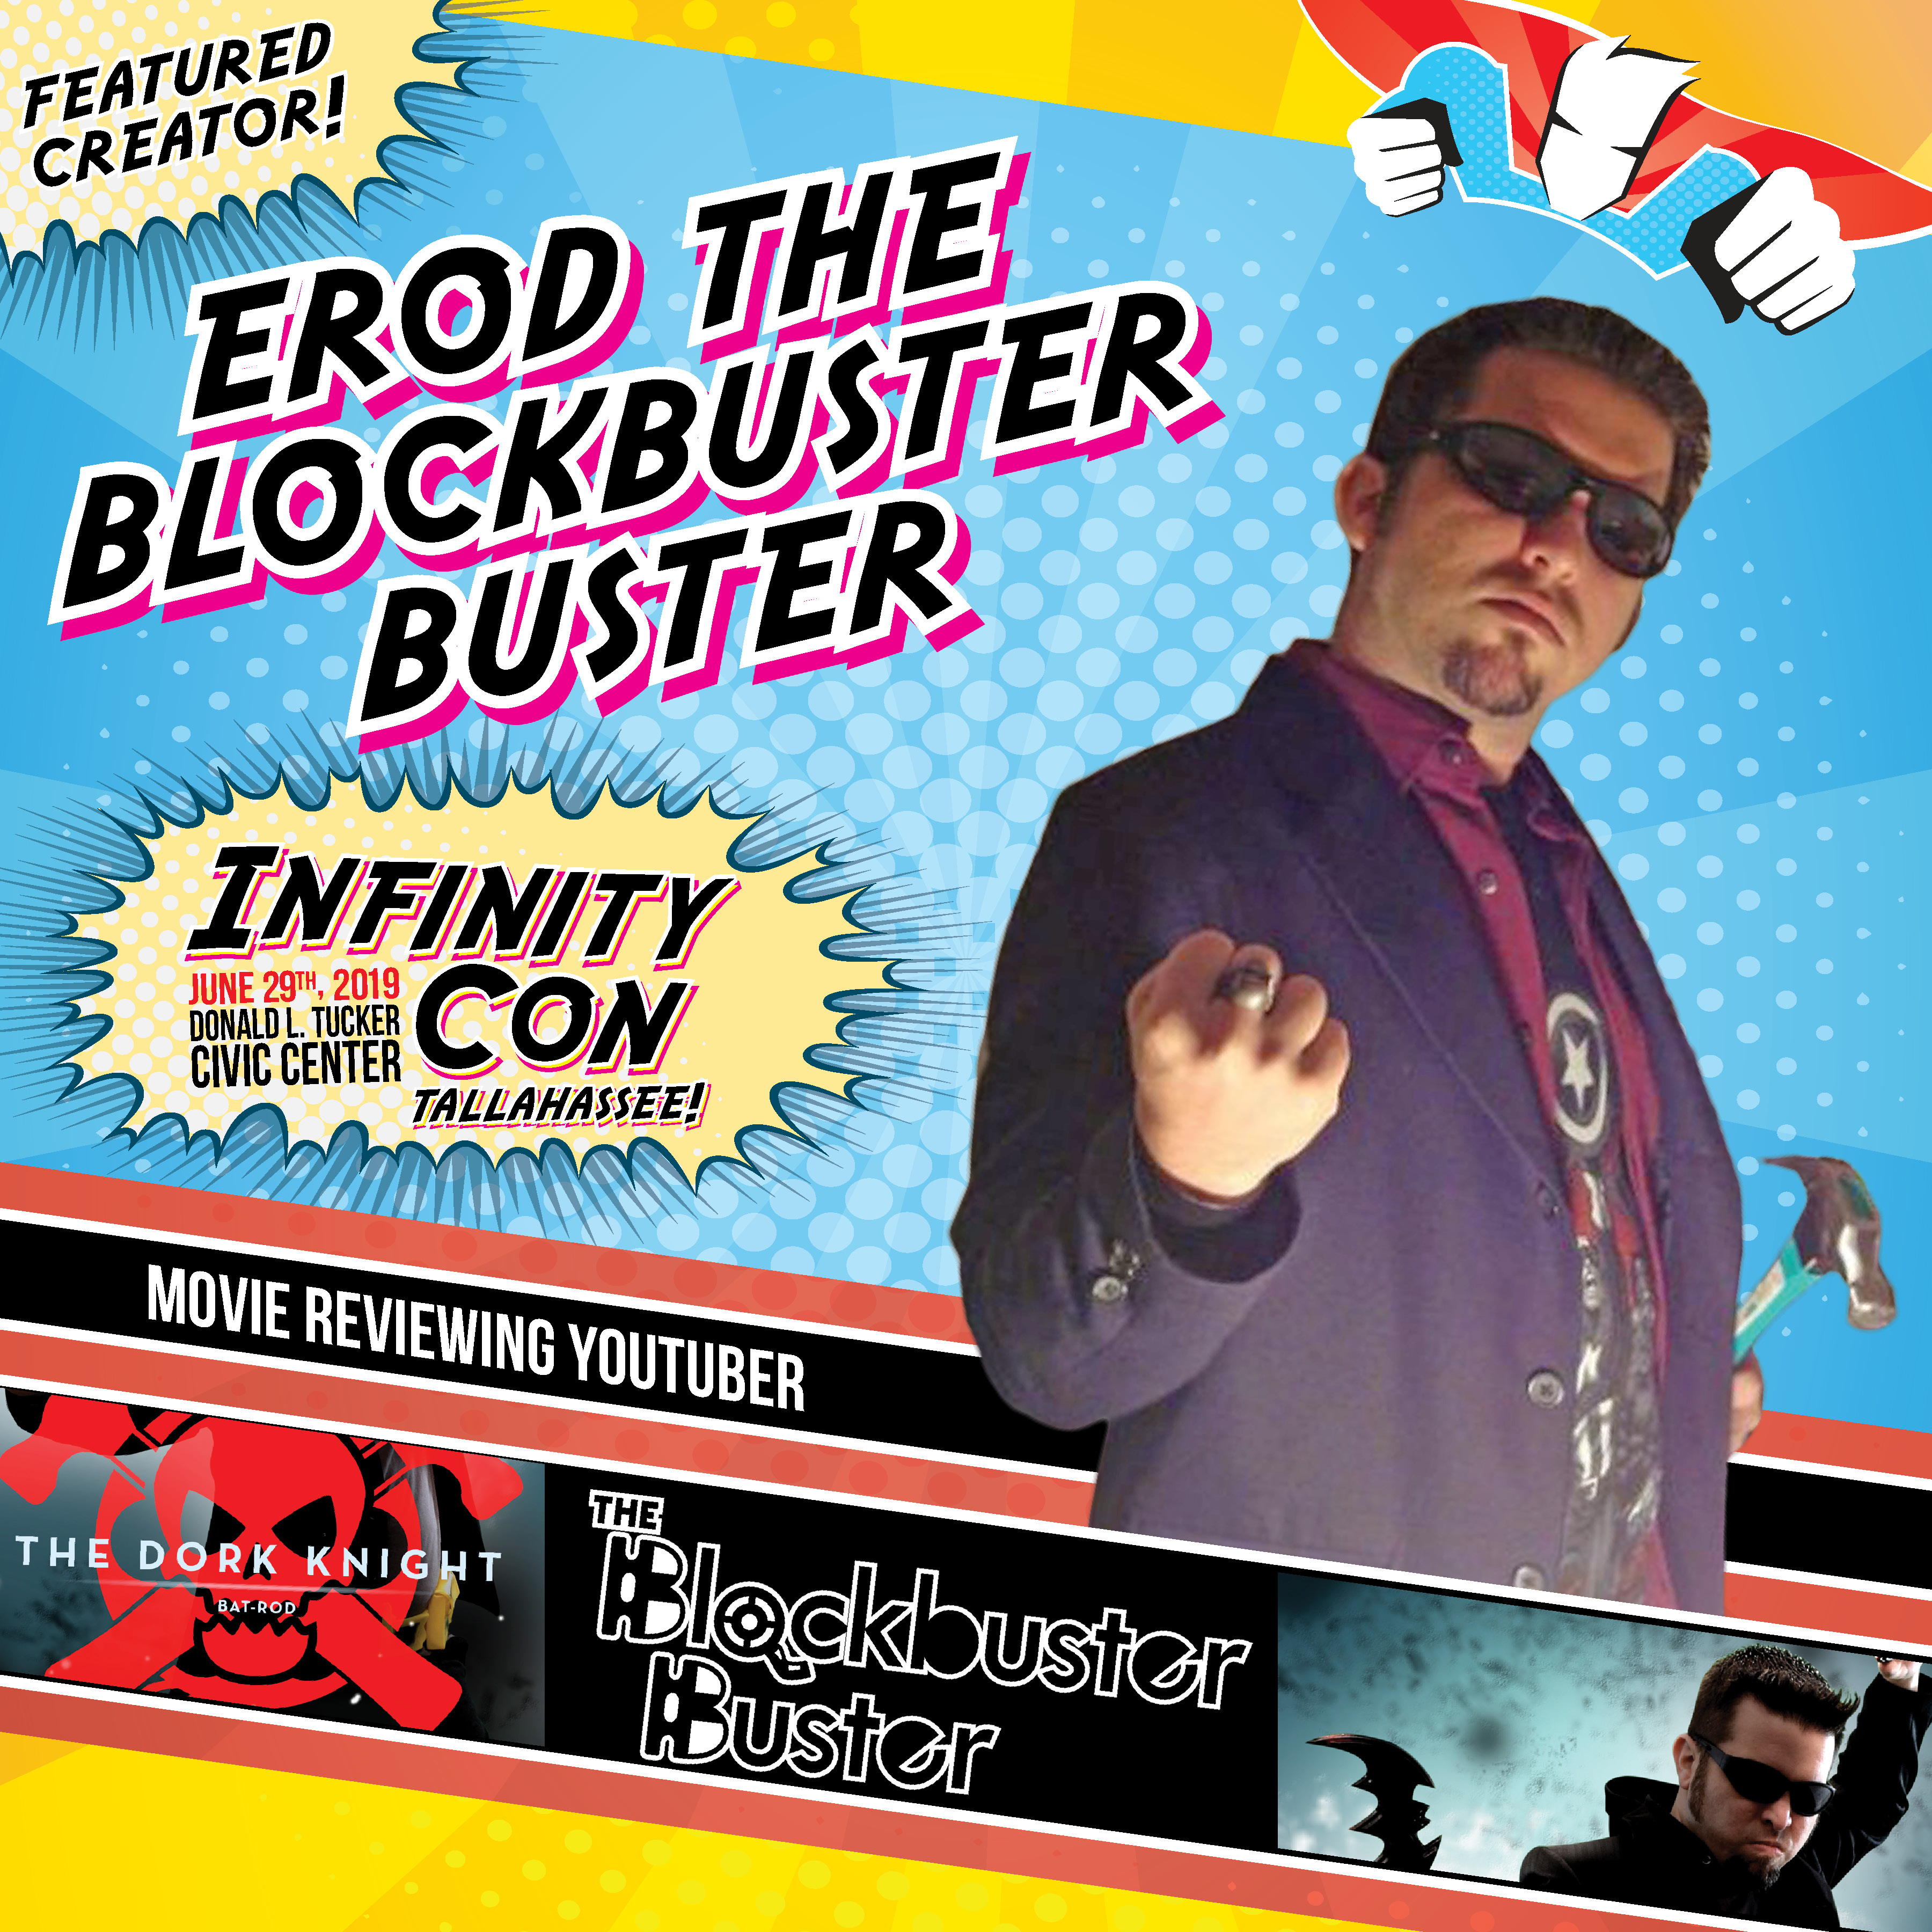 EROD The Blockbuster Buster!